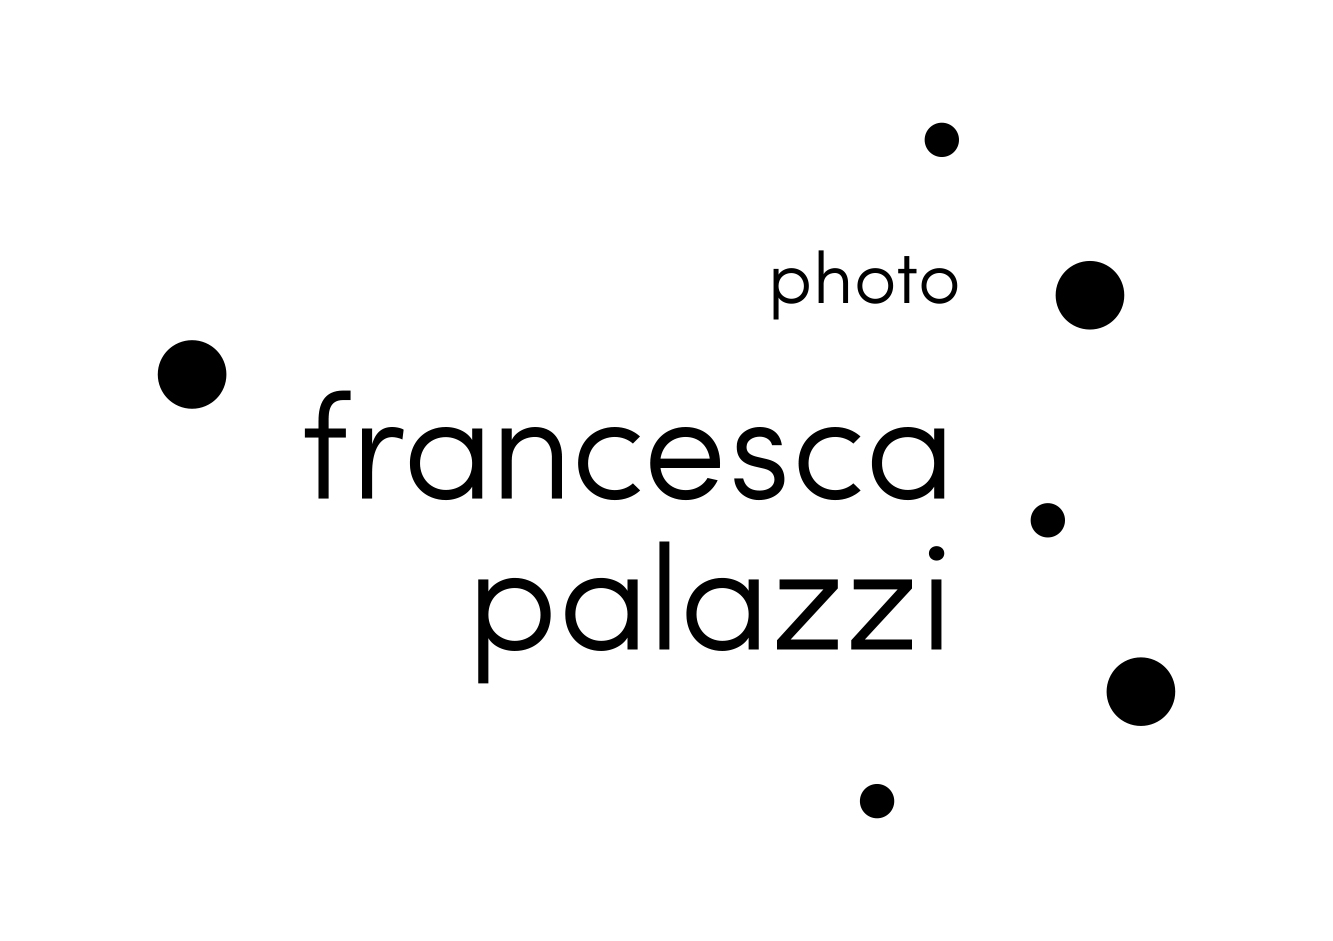 francesca palazzi ° photo